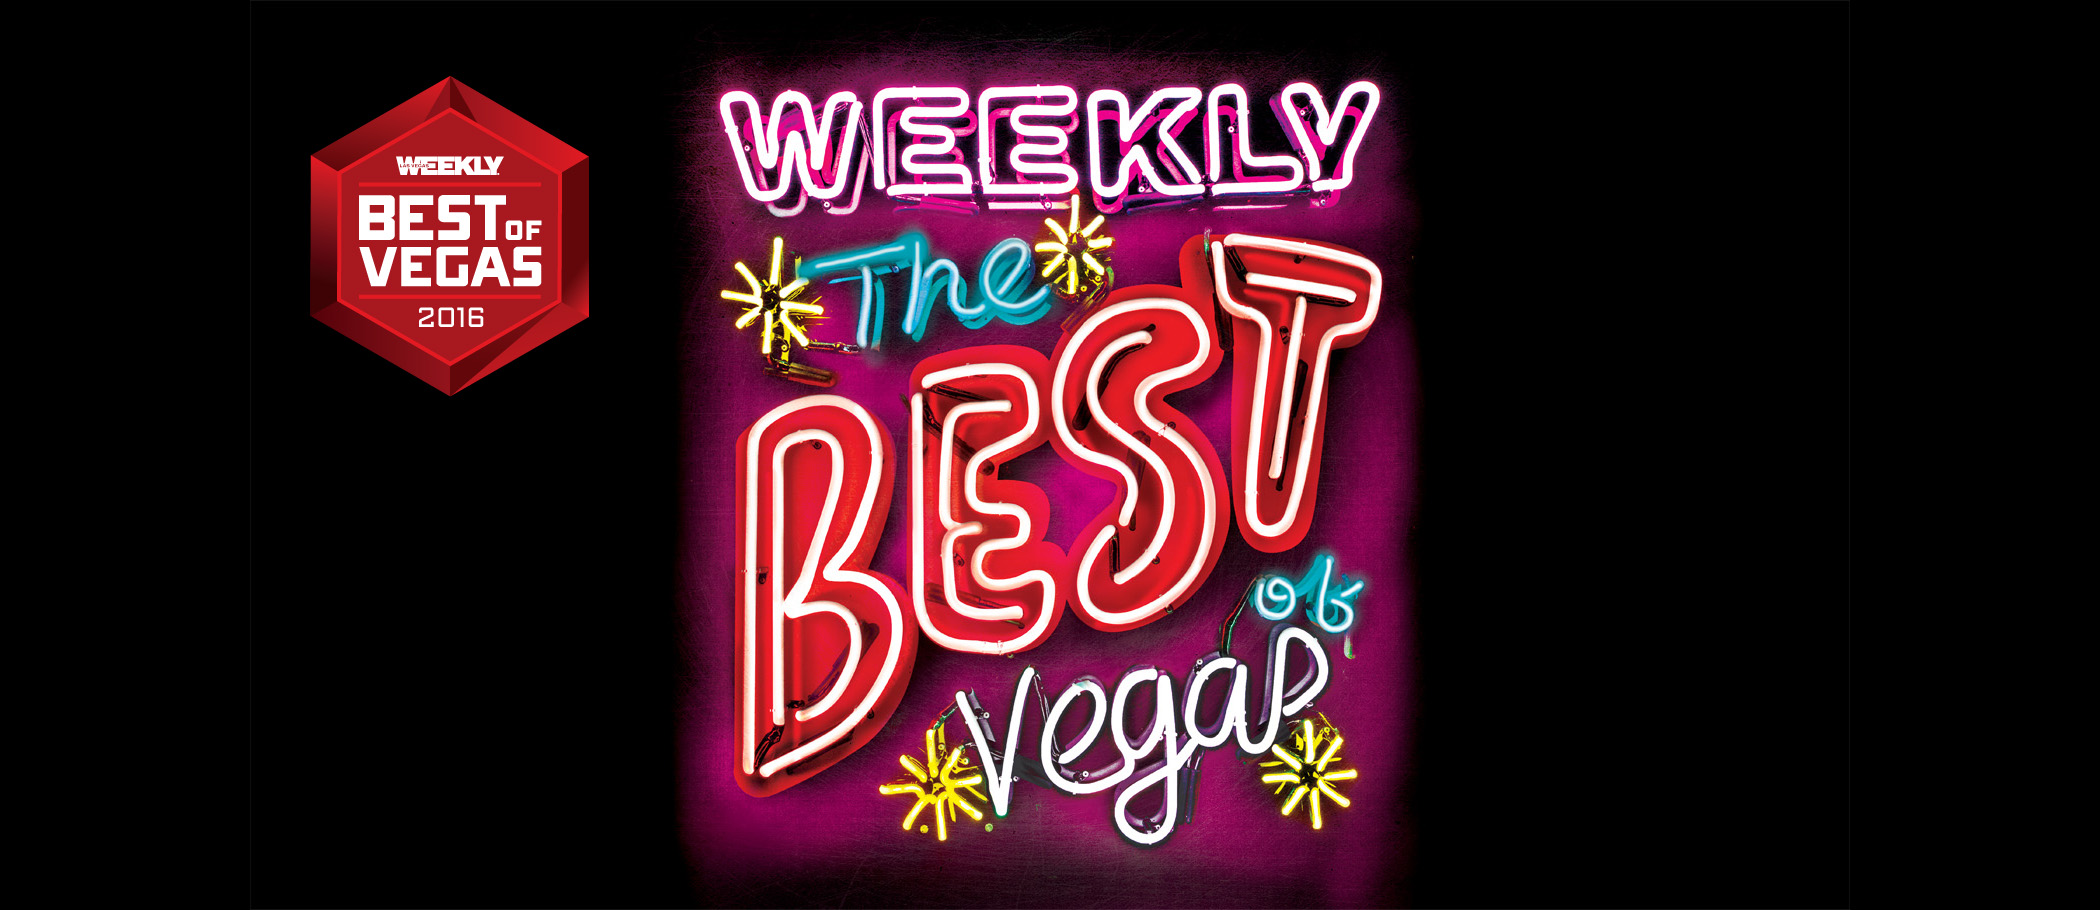 Best of Vegas 2016